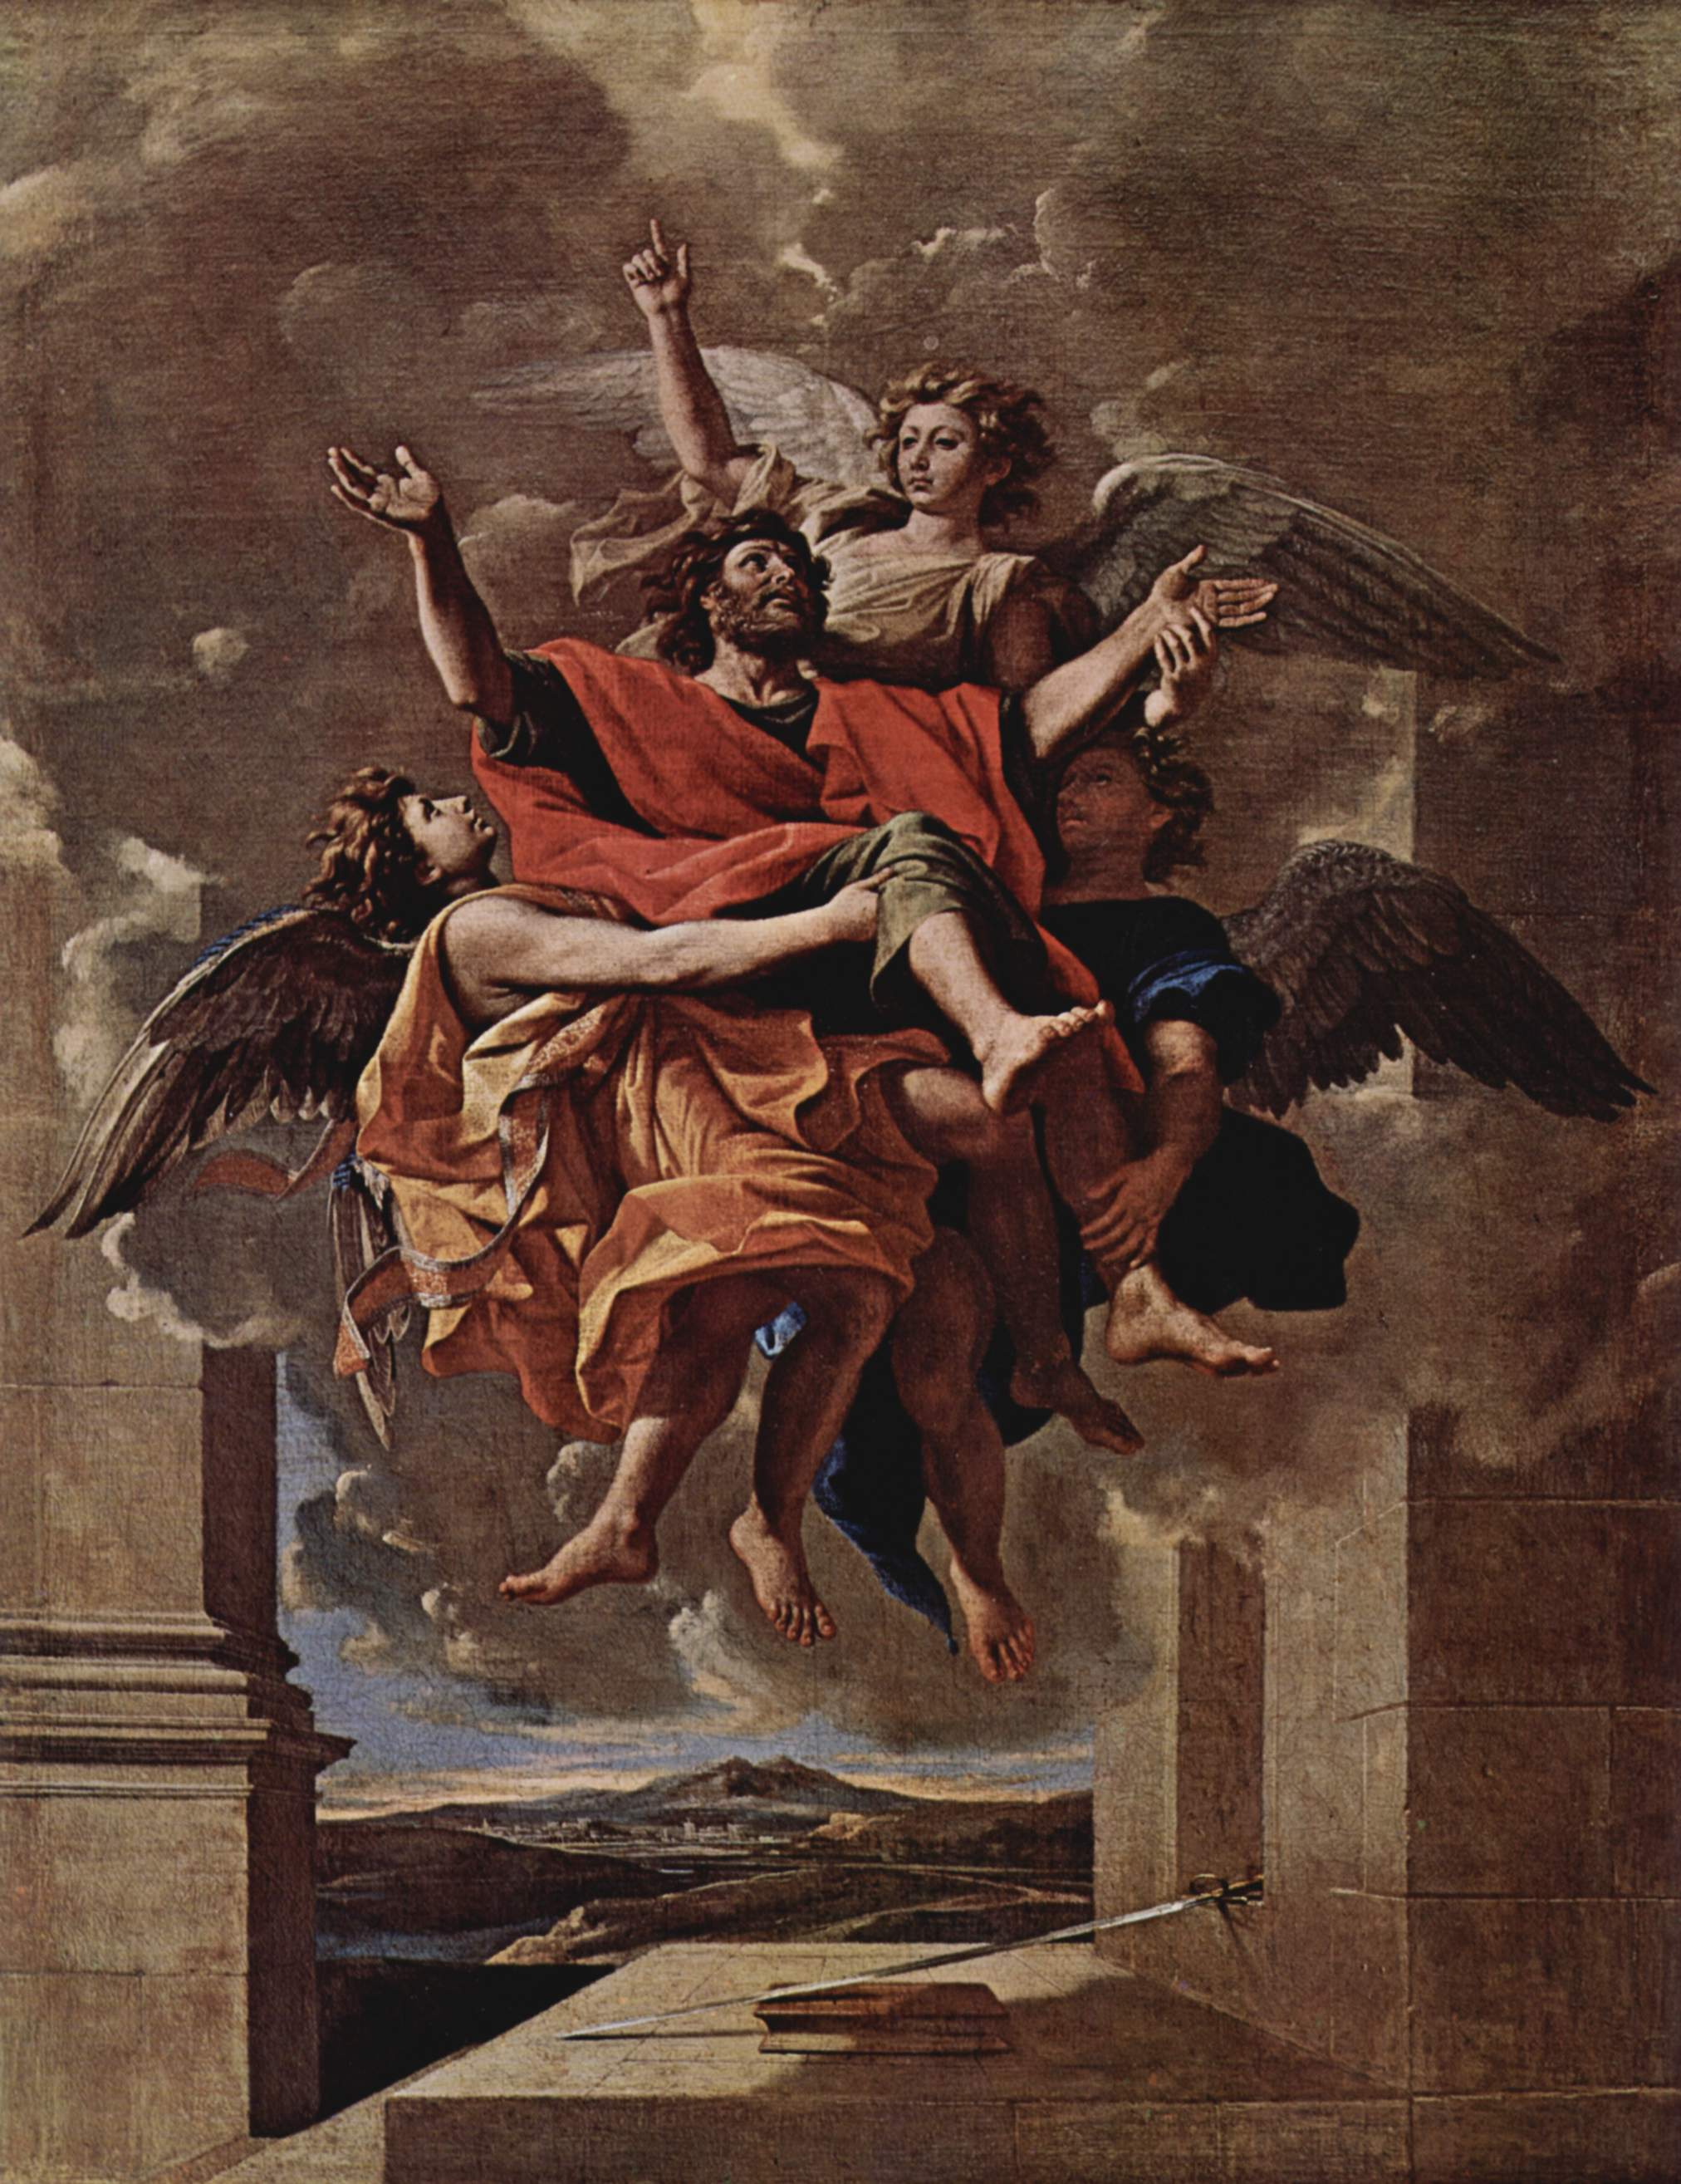 https://uploads3.wikiart.org/images/nicolas-poussin/the-vision-of-st-paul-1650.jpg